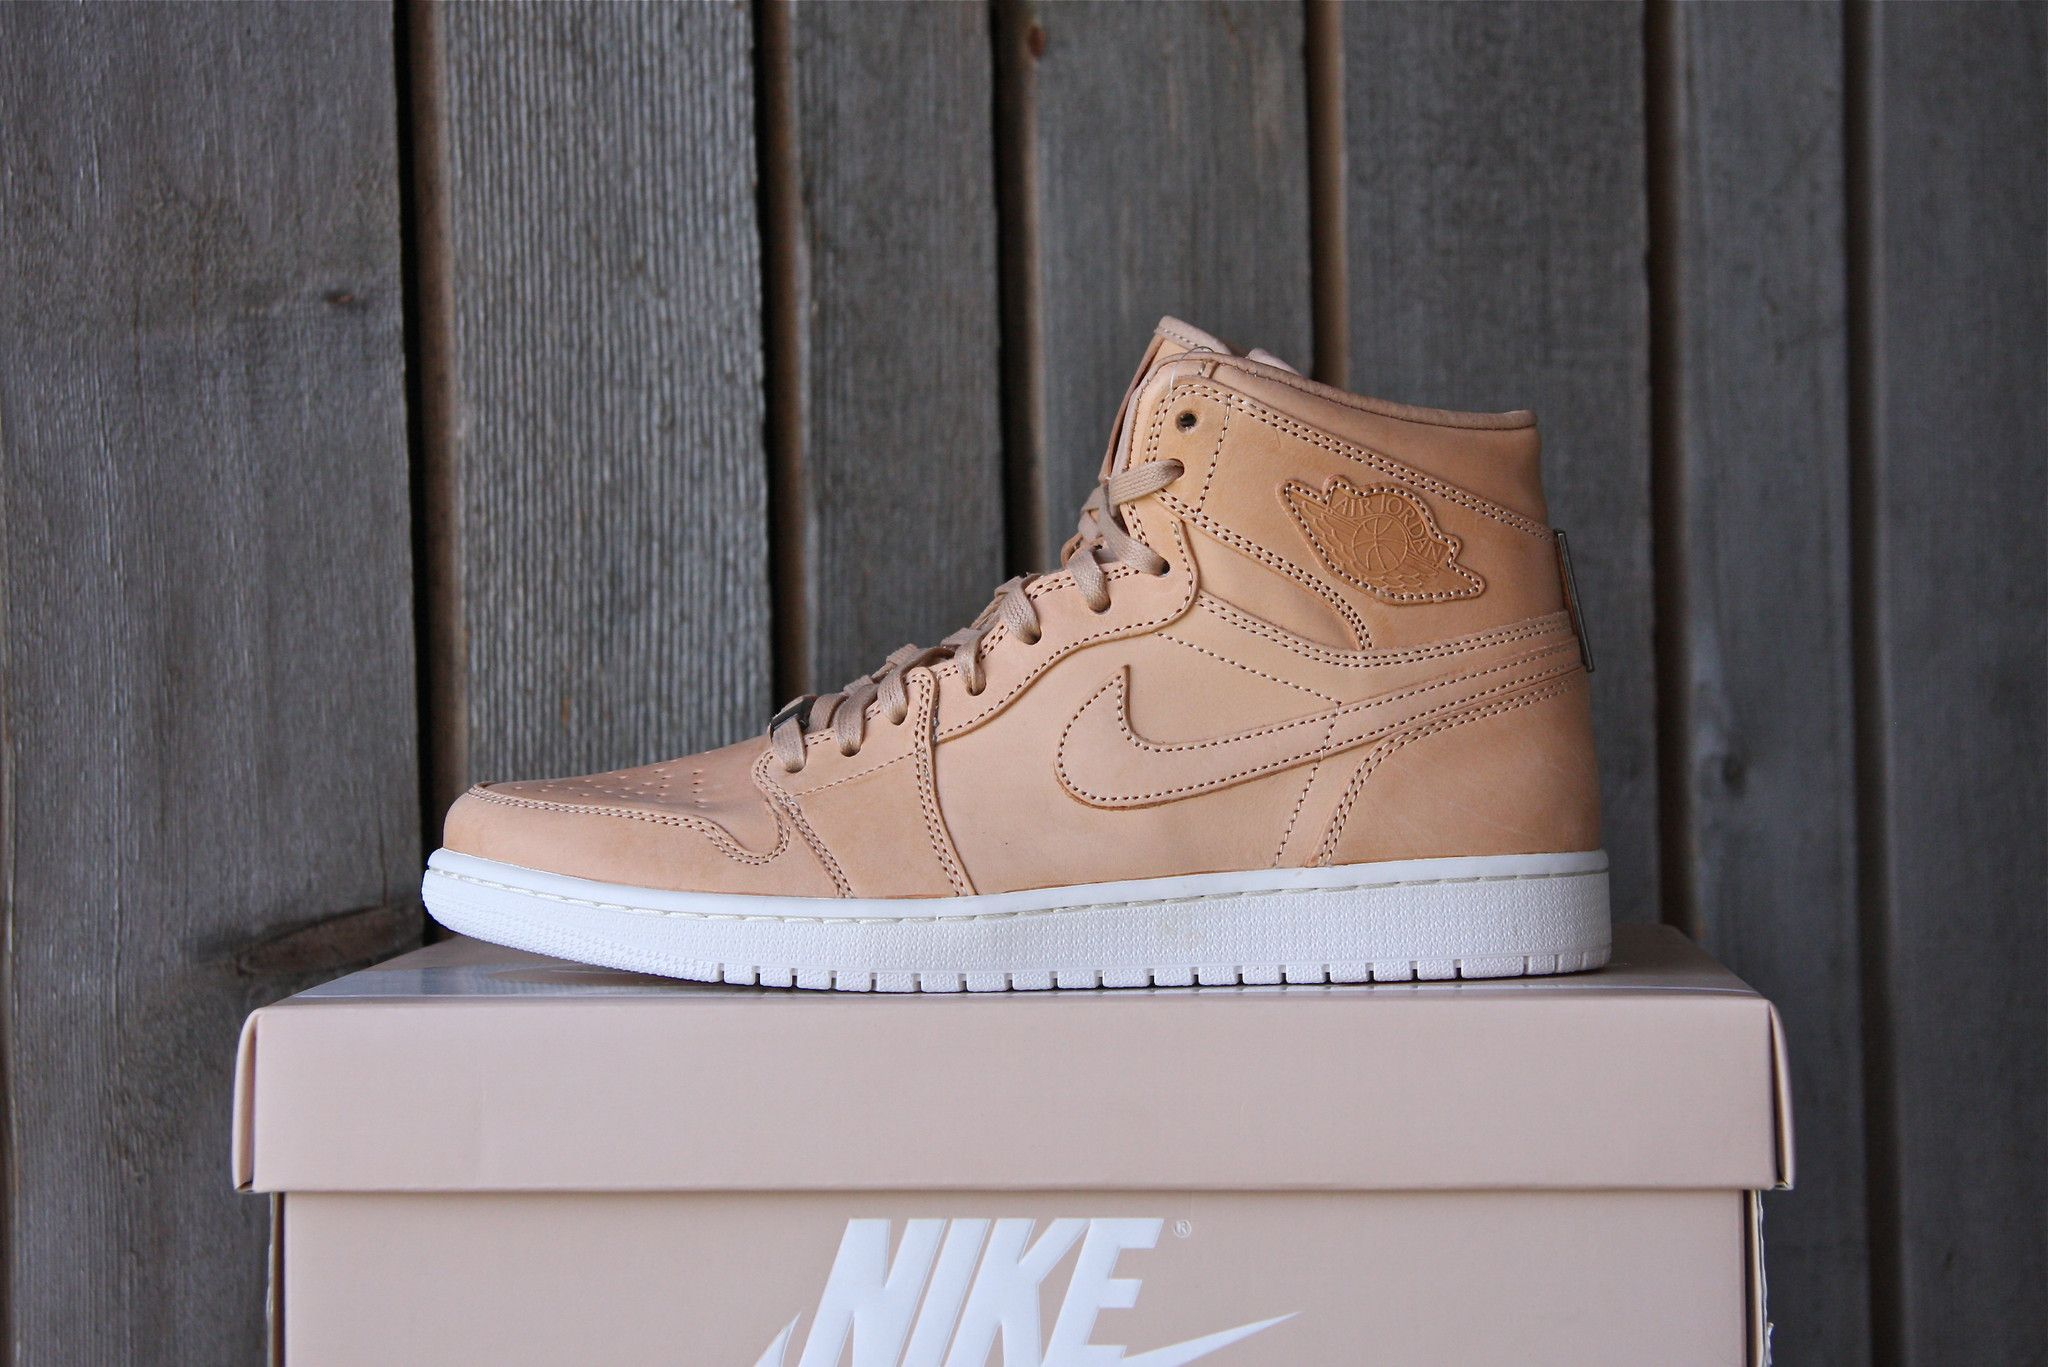 cf5166f25e8 These ultra premium renditions give a luxurious glow to the already classic Air  Jordan Retro 1's. Using premium vachetta tan leather base and burnished ...